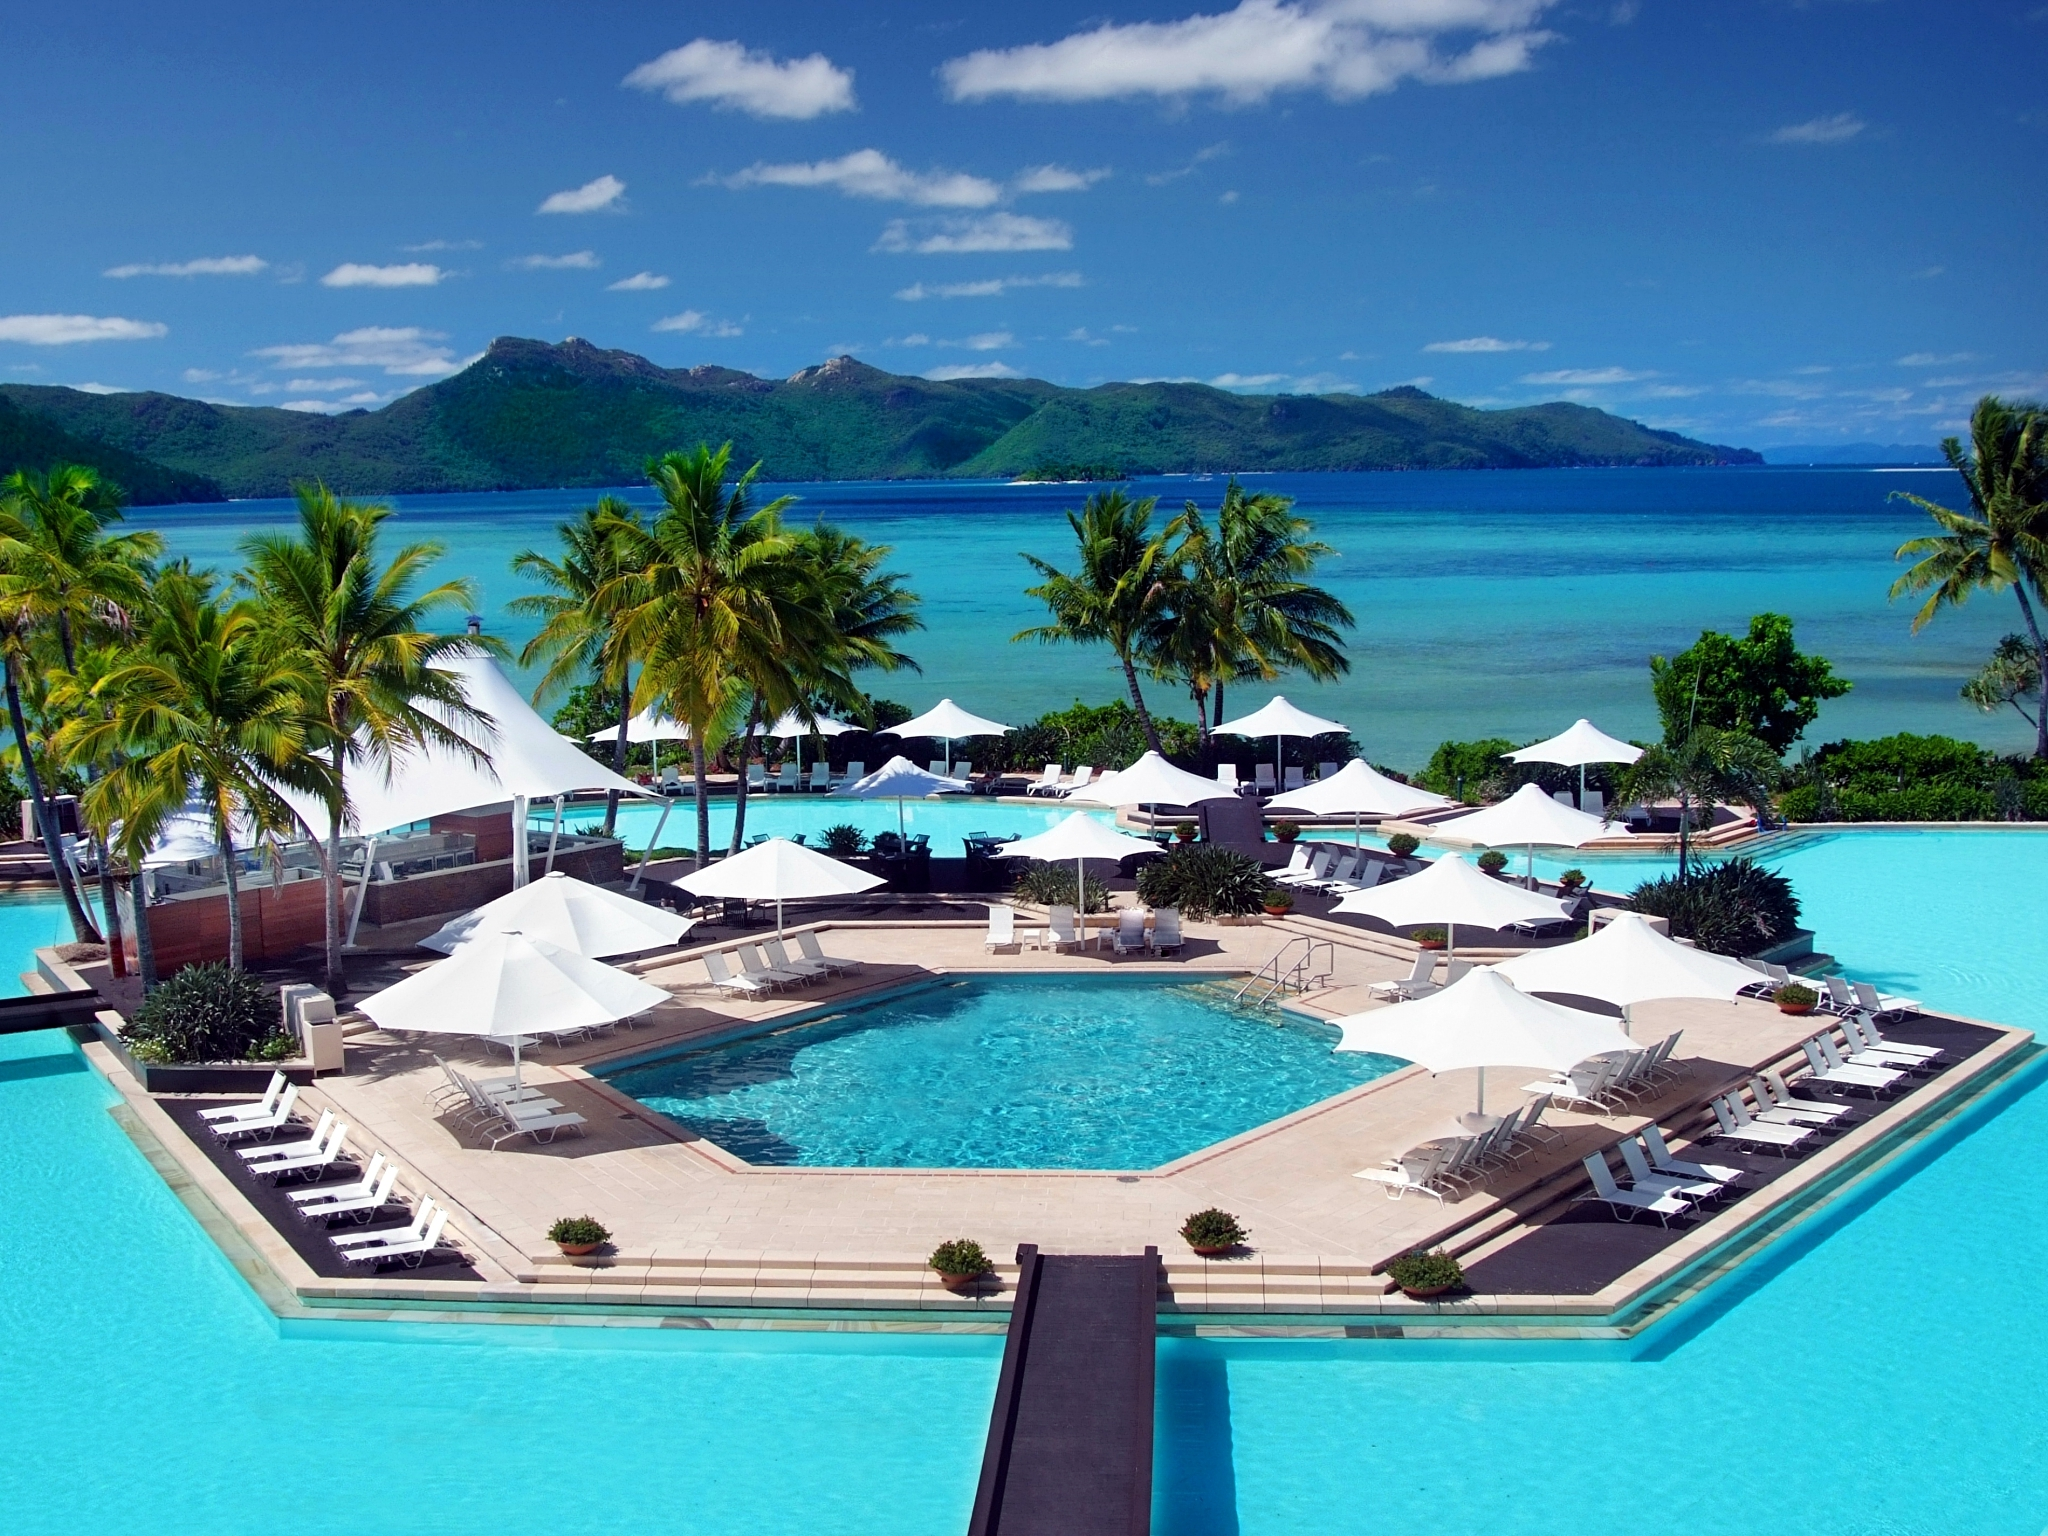 The main pool at the luxury Hayman Island resort in Queensland